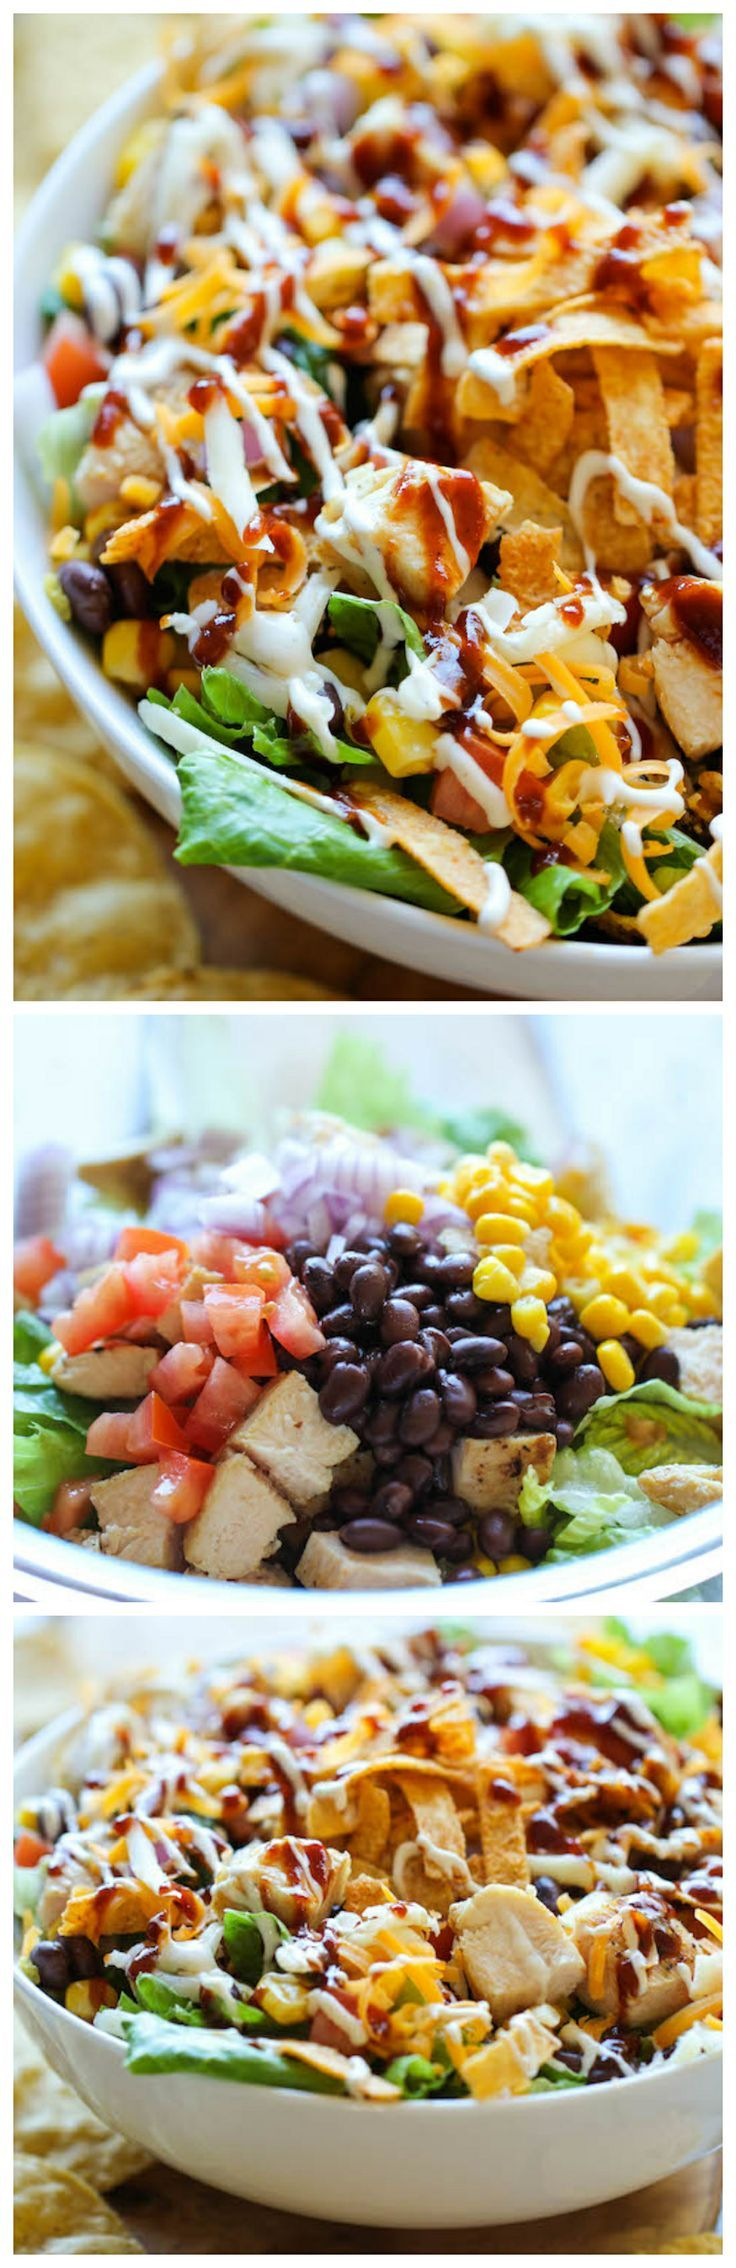 BBQ Chicken Salad - This healthy, flavorful salad comes together so quickly,